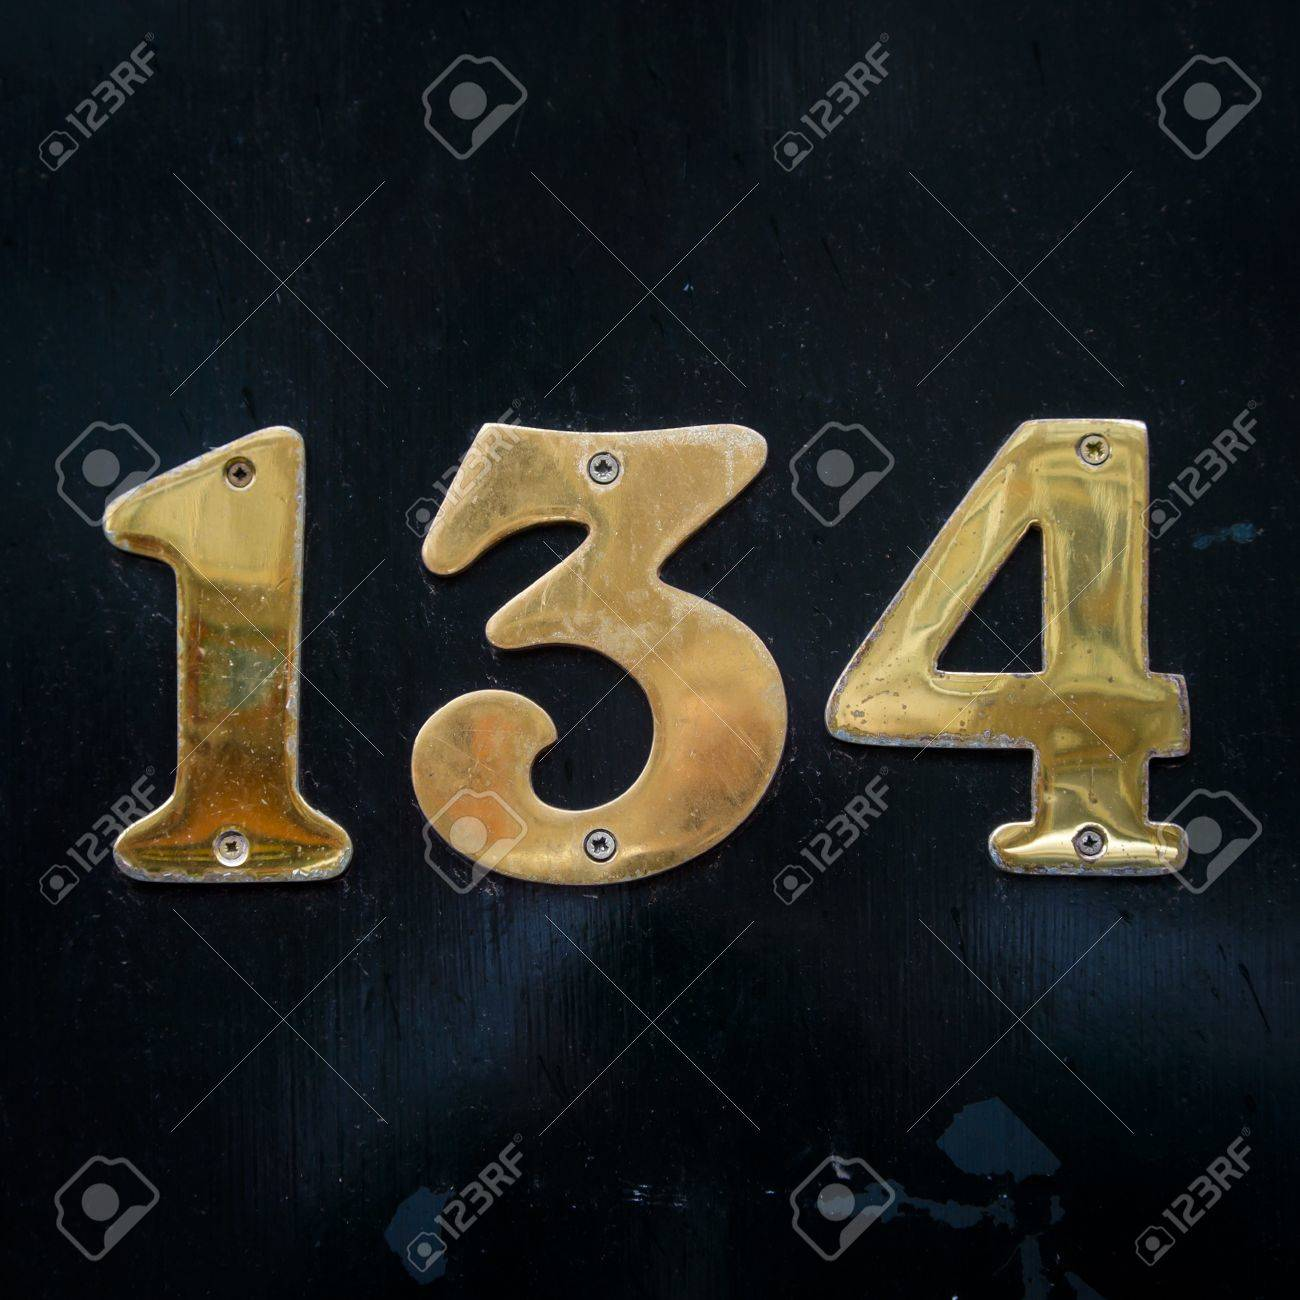 shiny, gold colored house number 134 on dak background Stock Photo -  13255063